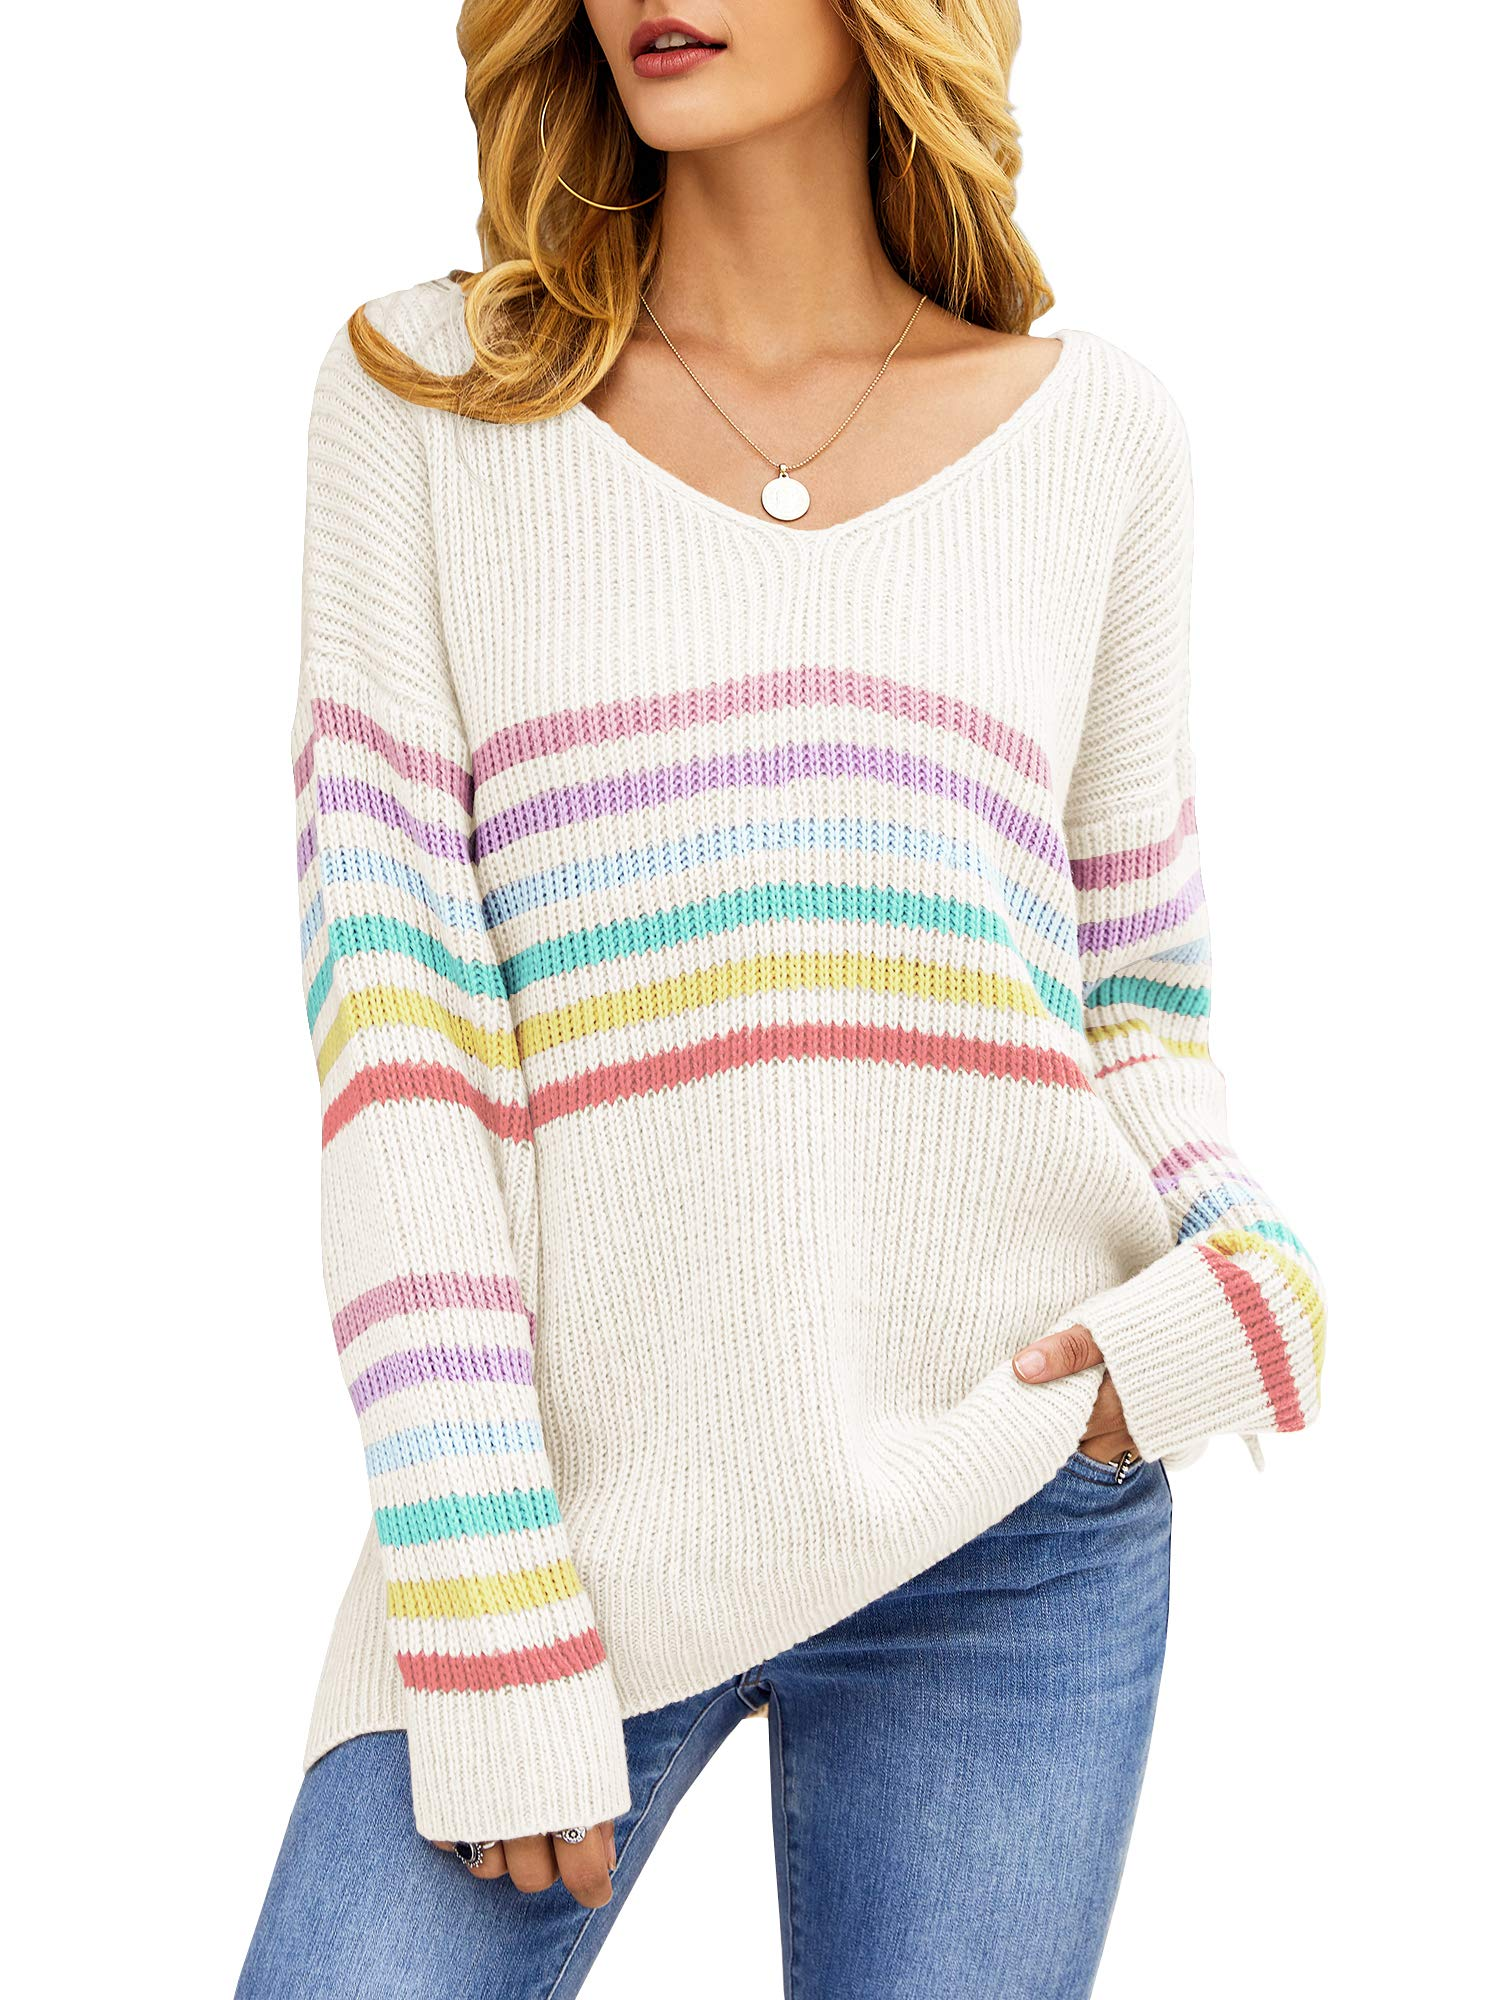 Sherrylily Womens Oversized Pullover Rainbow Long Sleeve Stripe Sweaters Casual V Neck Loose Tops